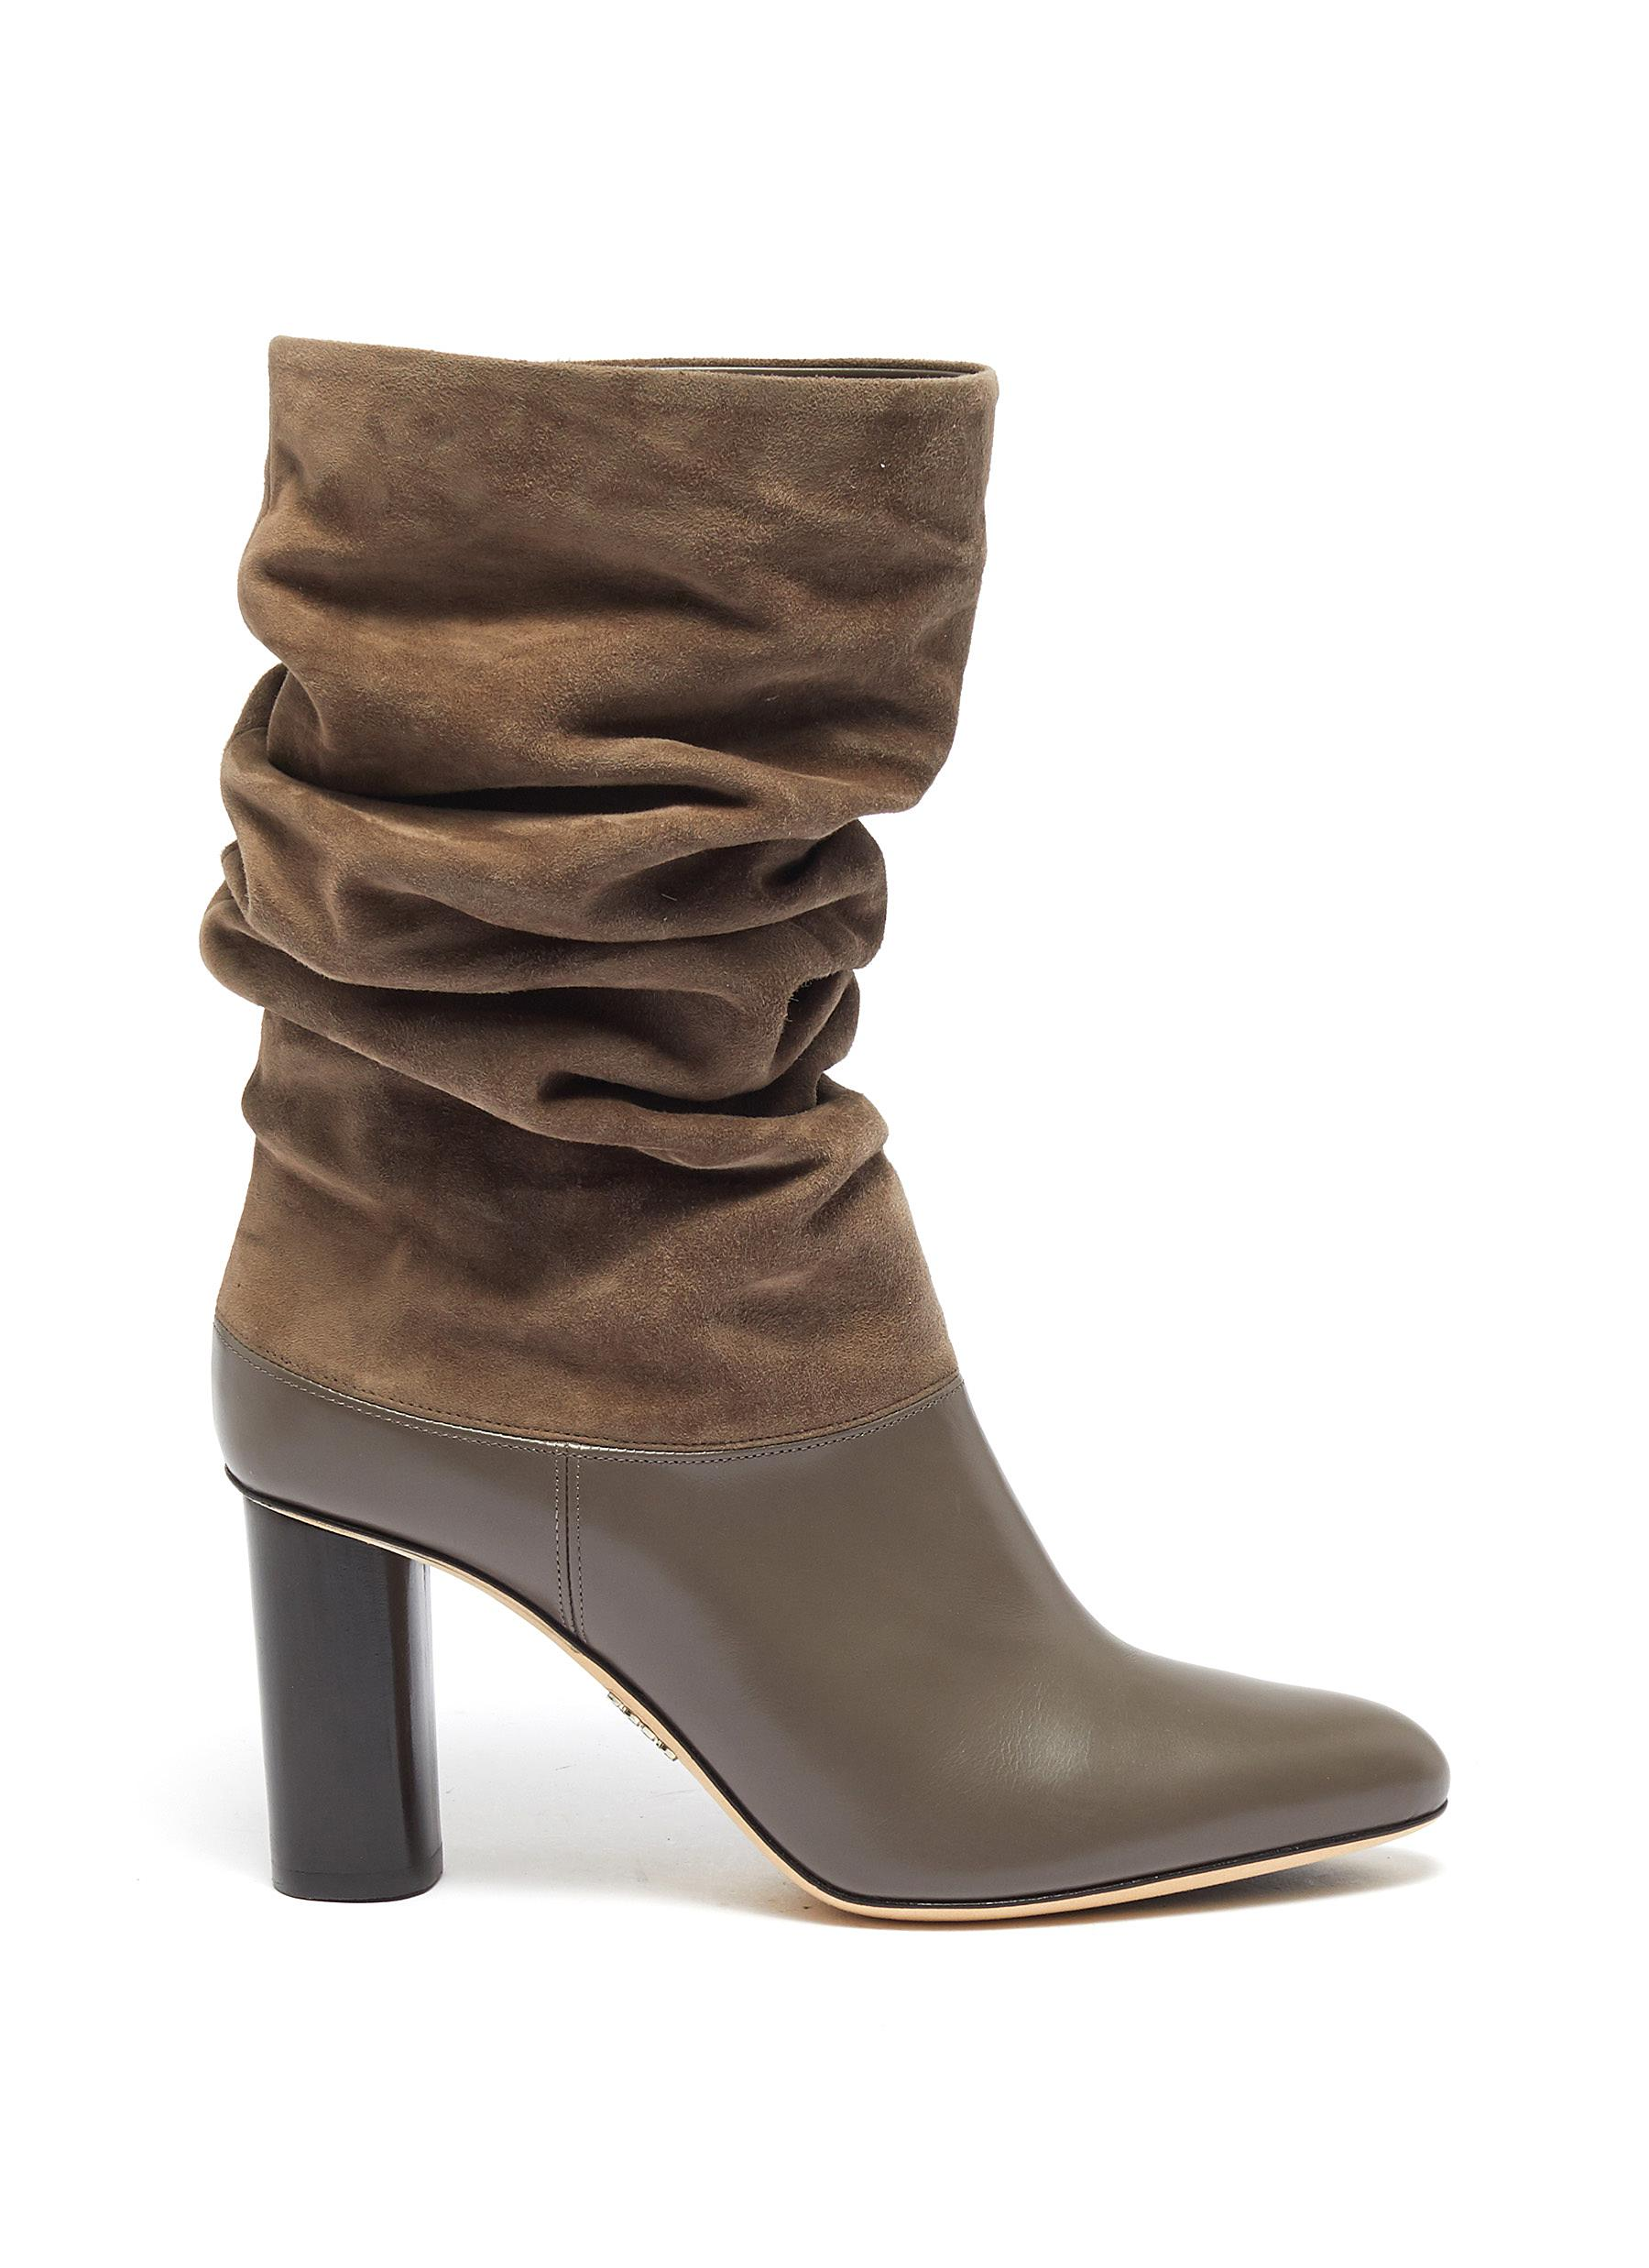 Slouchy suede leather boots by Rodo